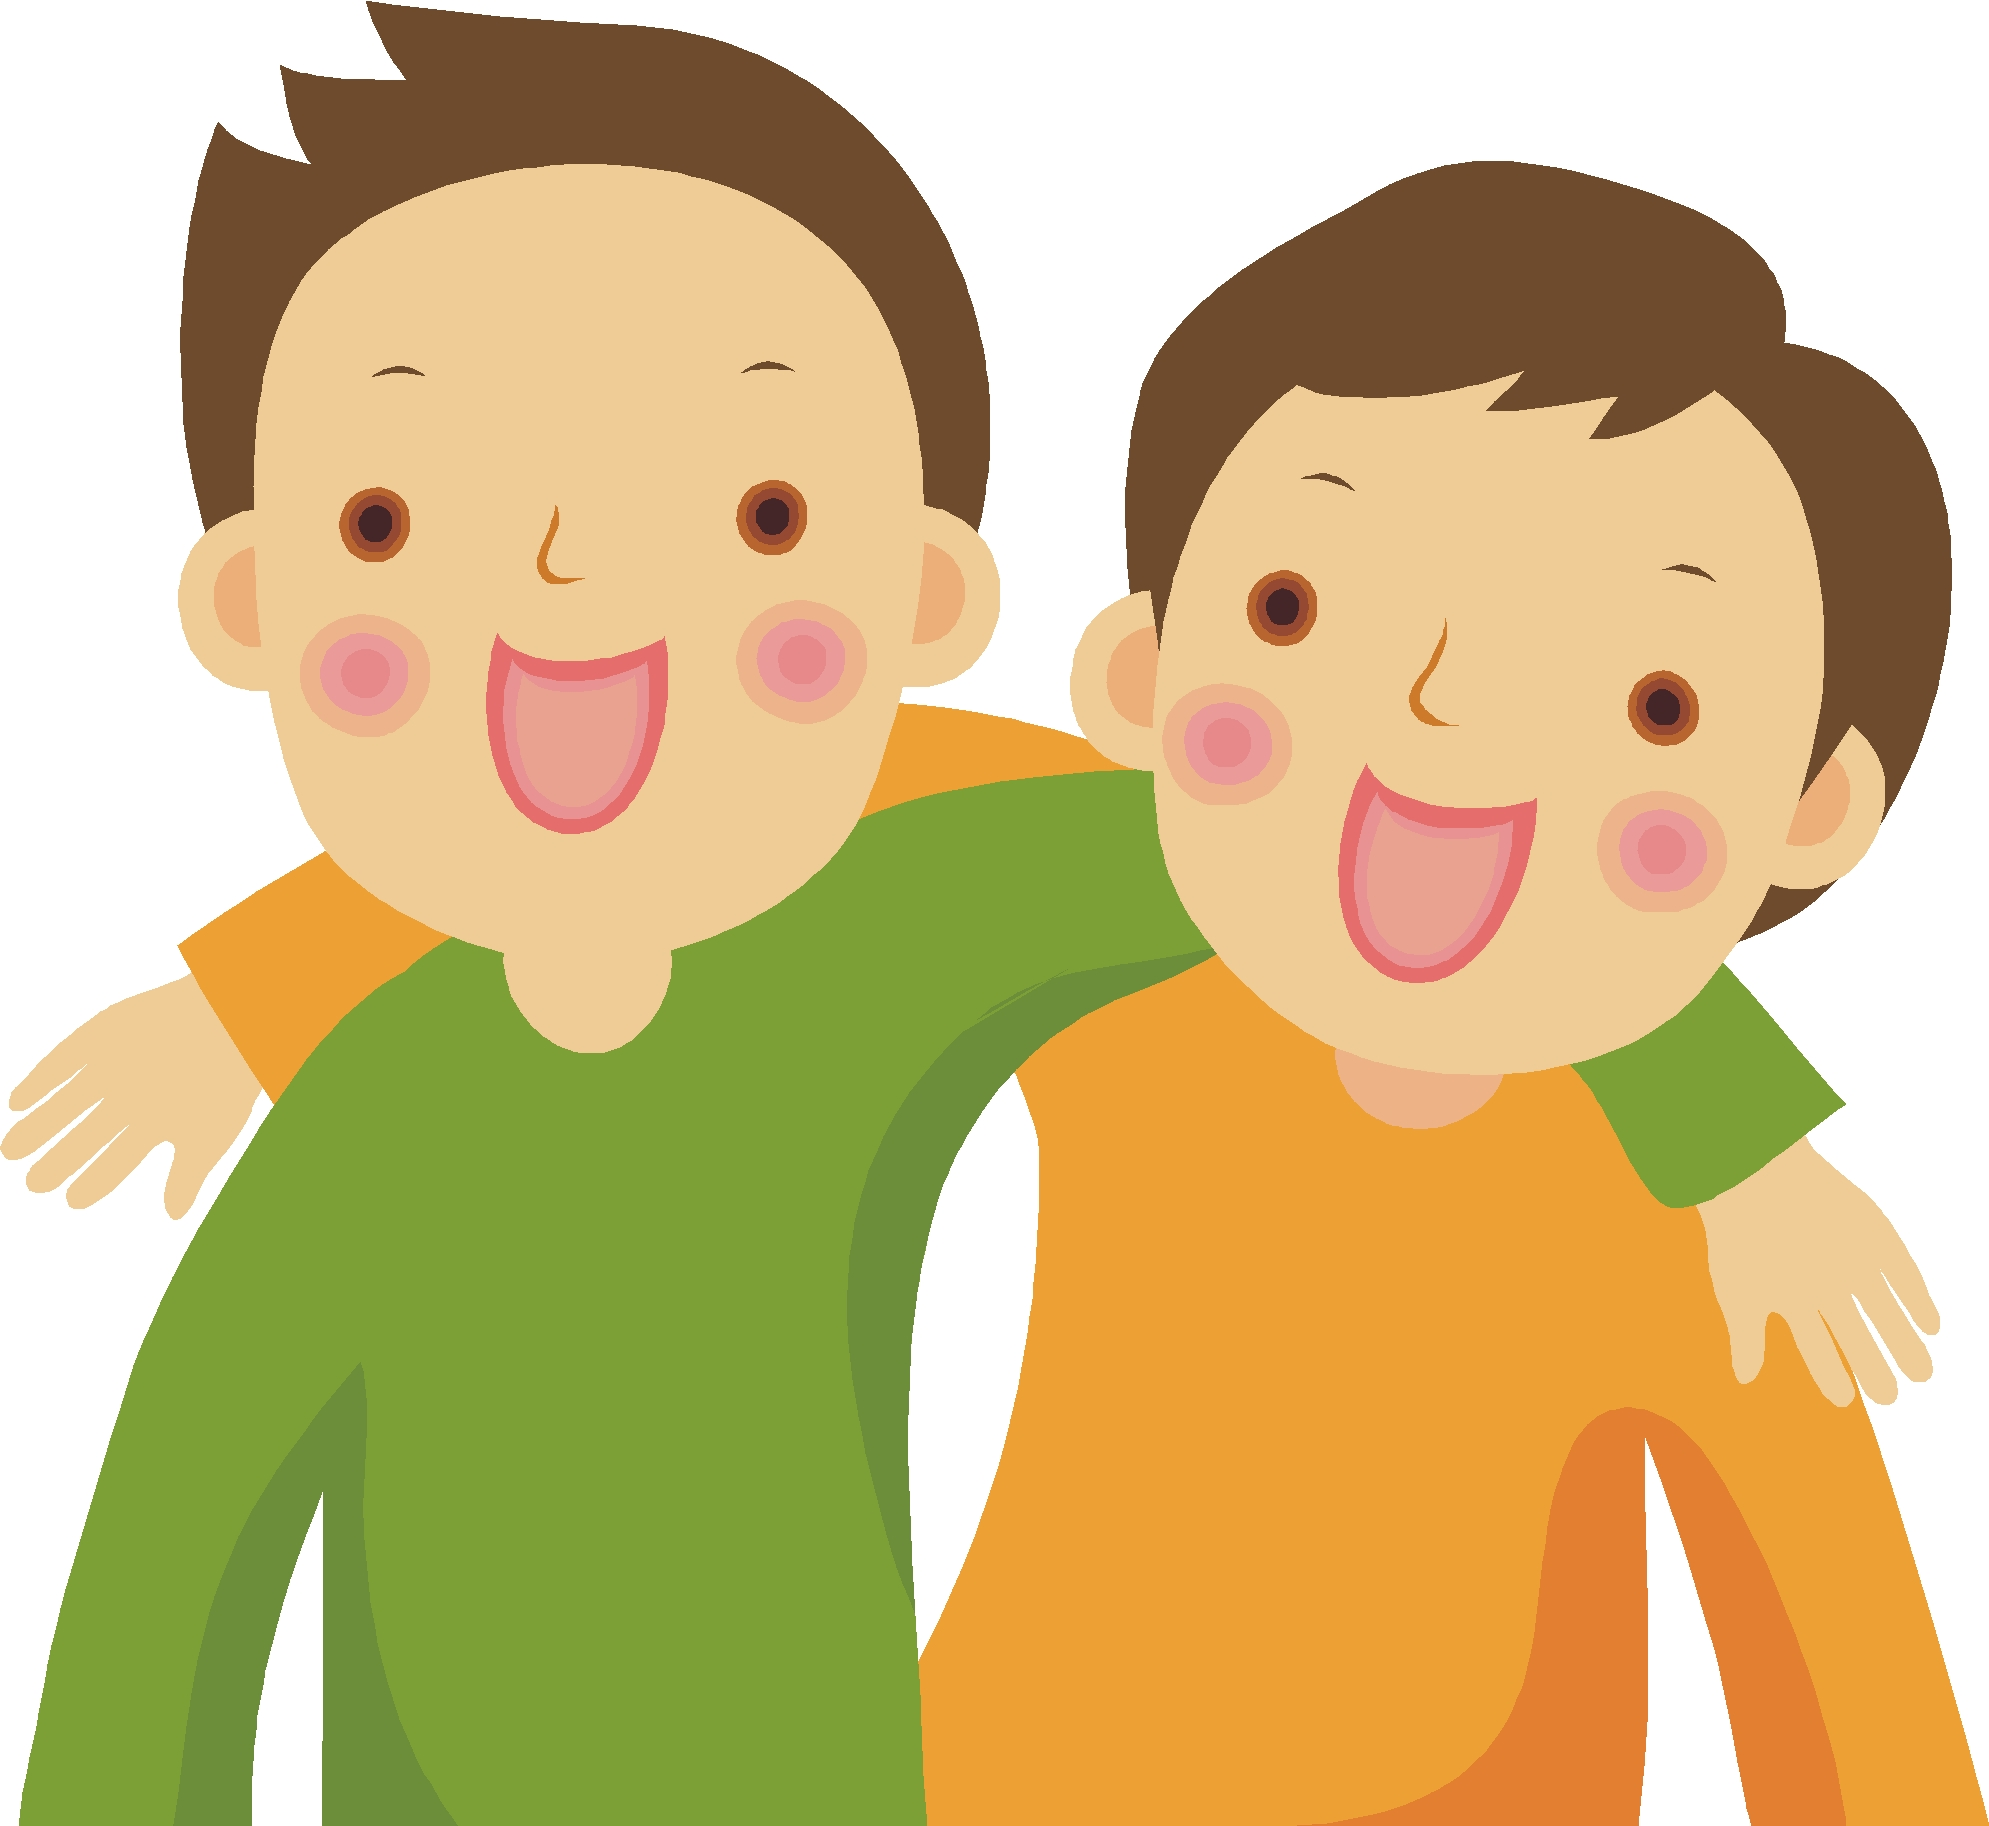 two friends clipart kids - Clipground